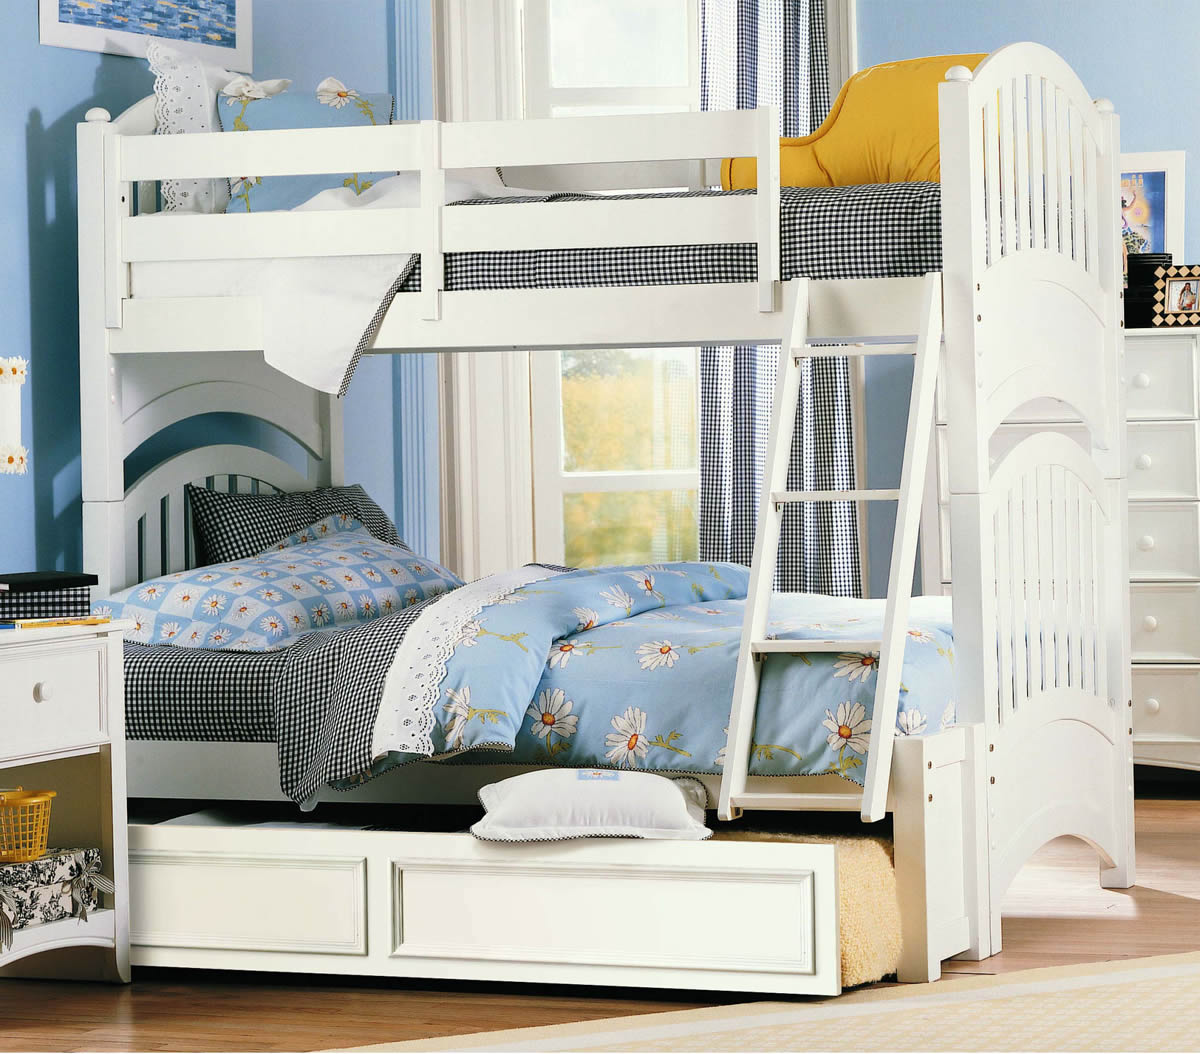 Lea Furniture Getaway Twin over Full Bunk Bed